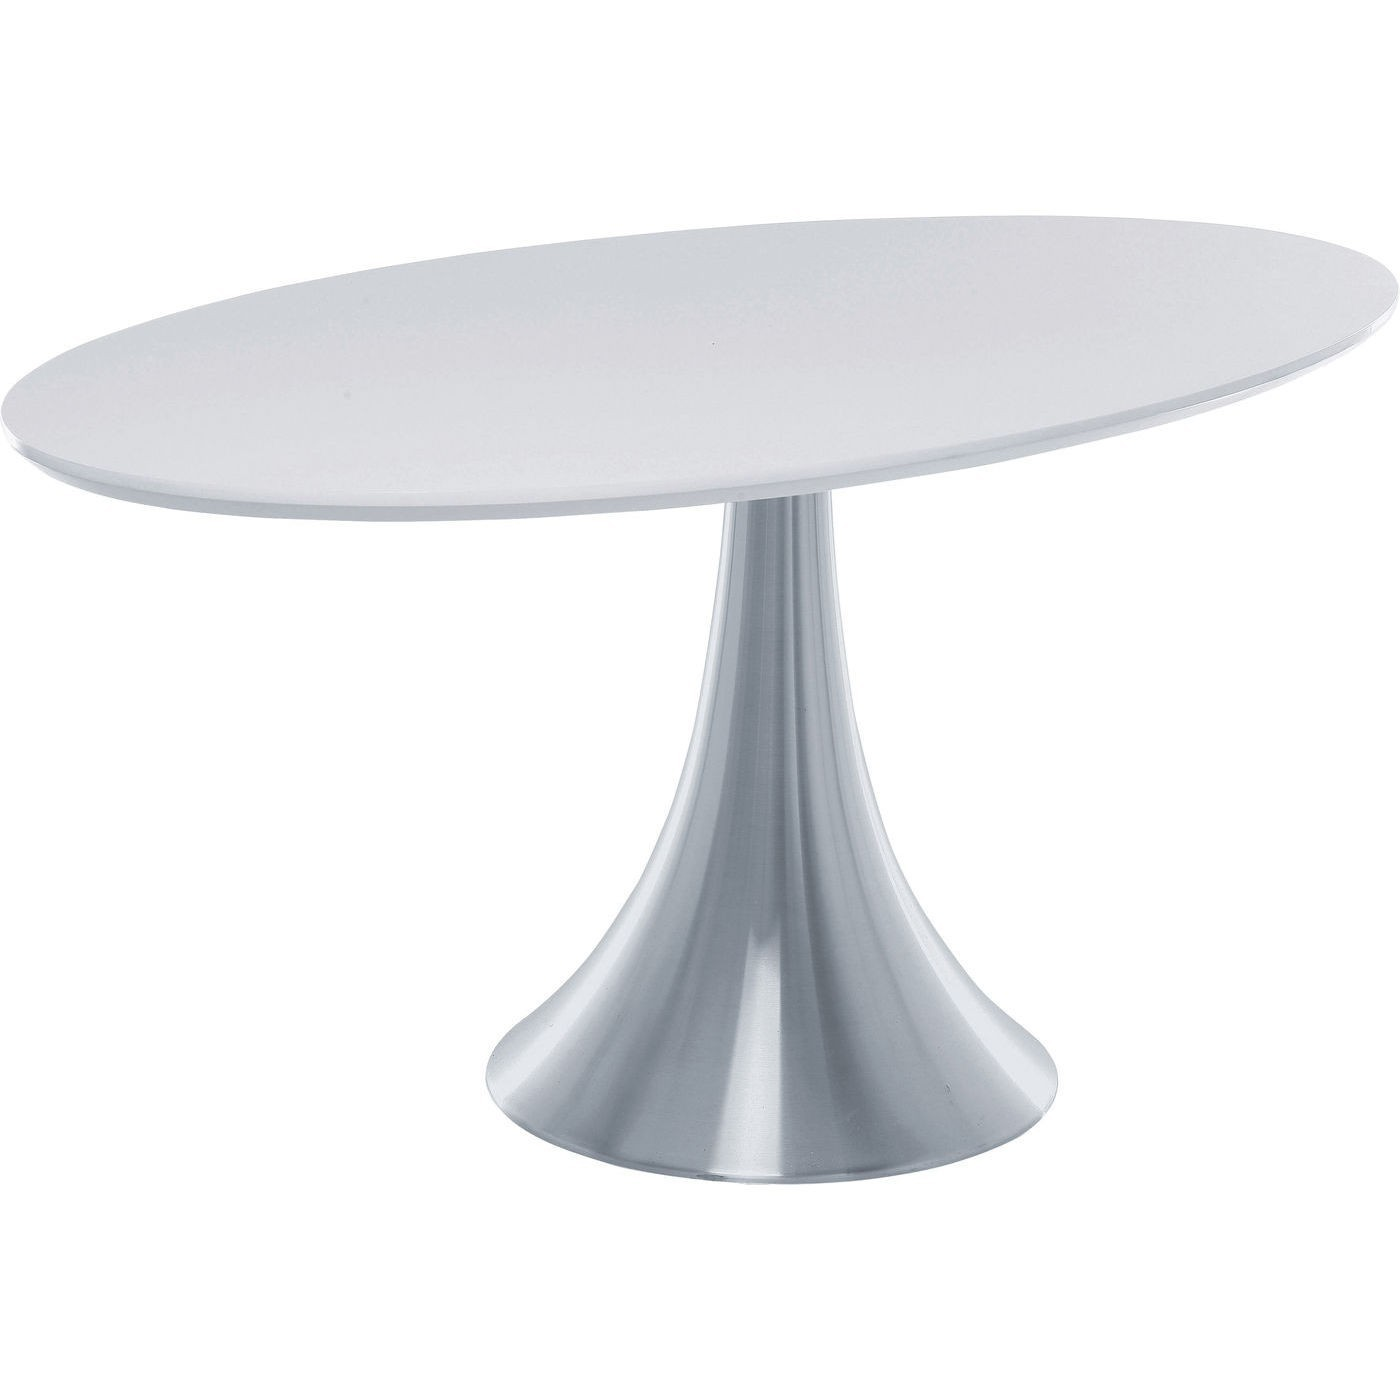 Table blanche Grande Possibilita 180x100cm Kare Design